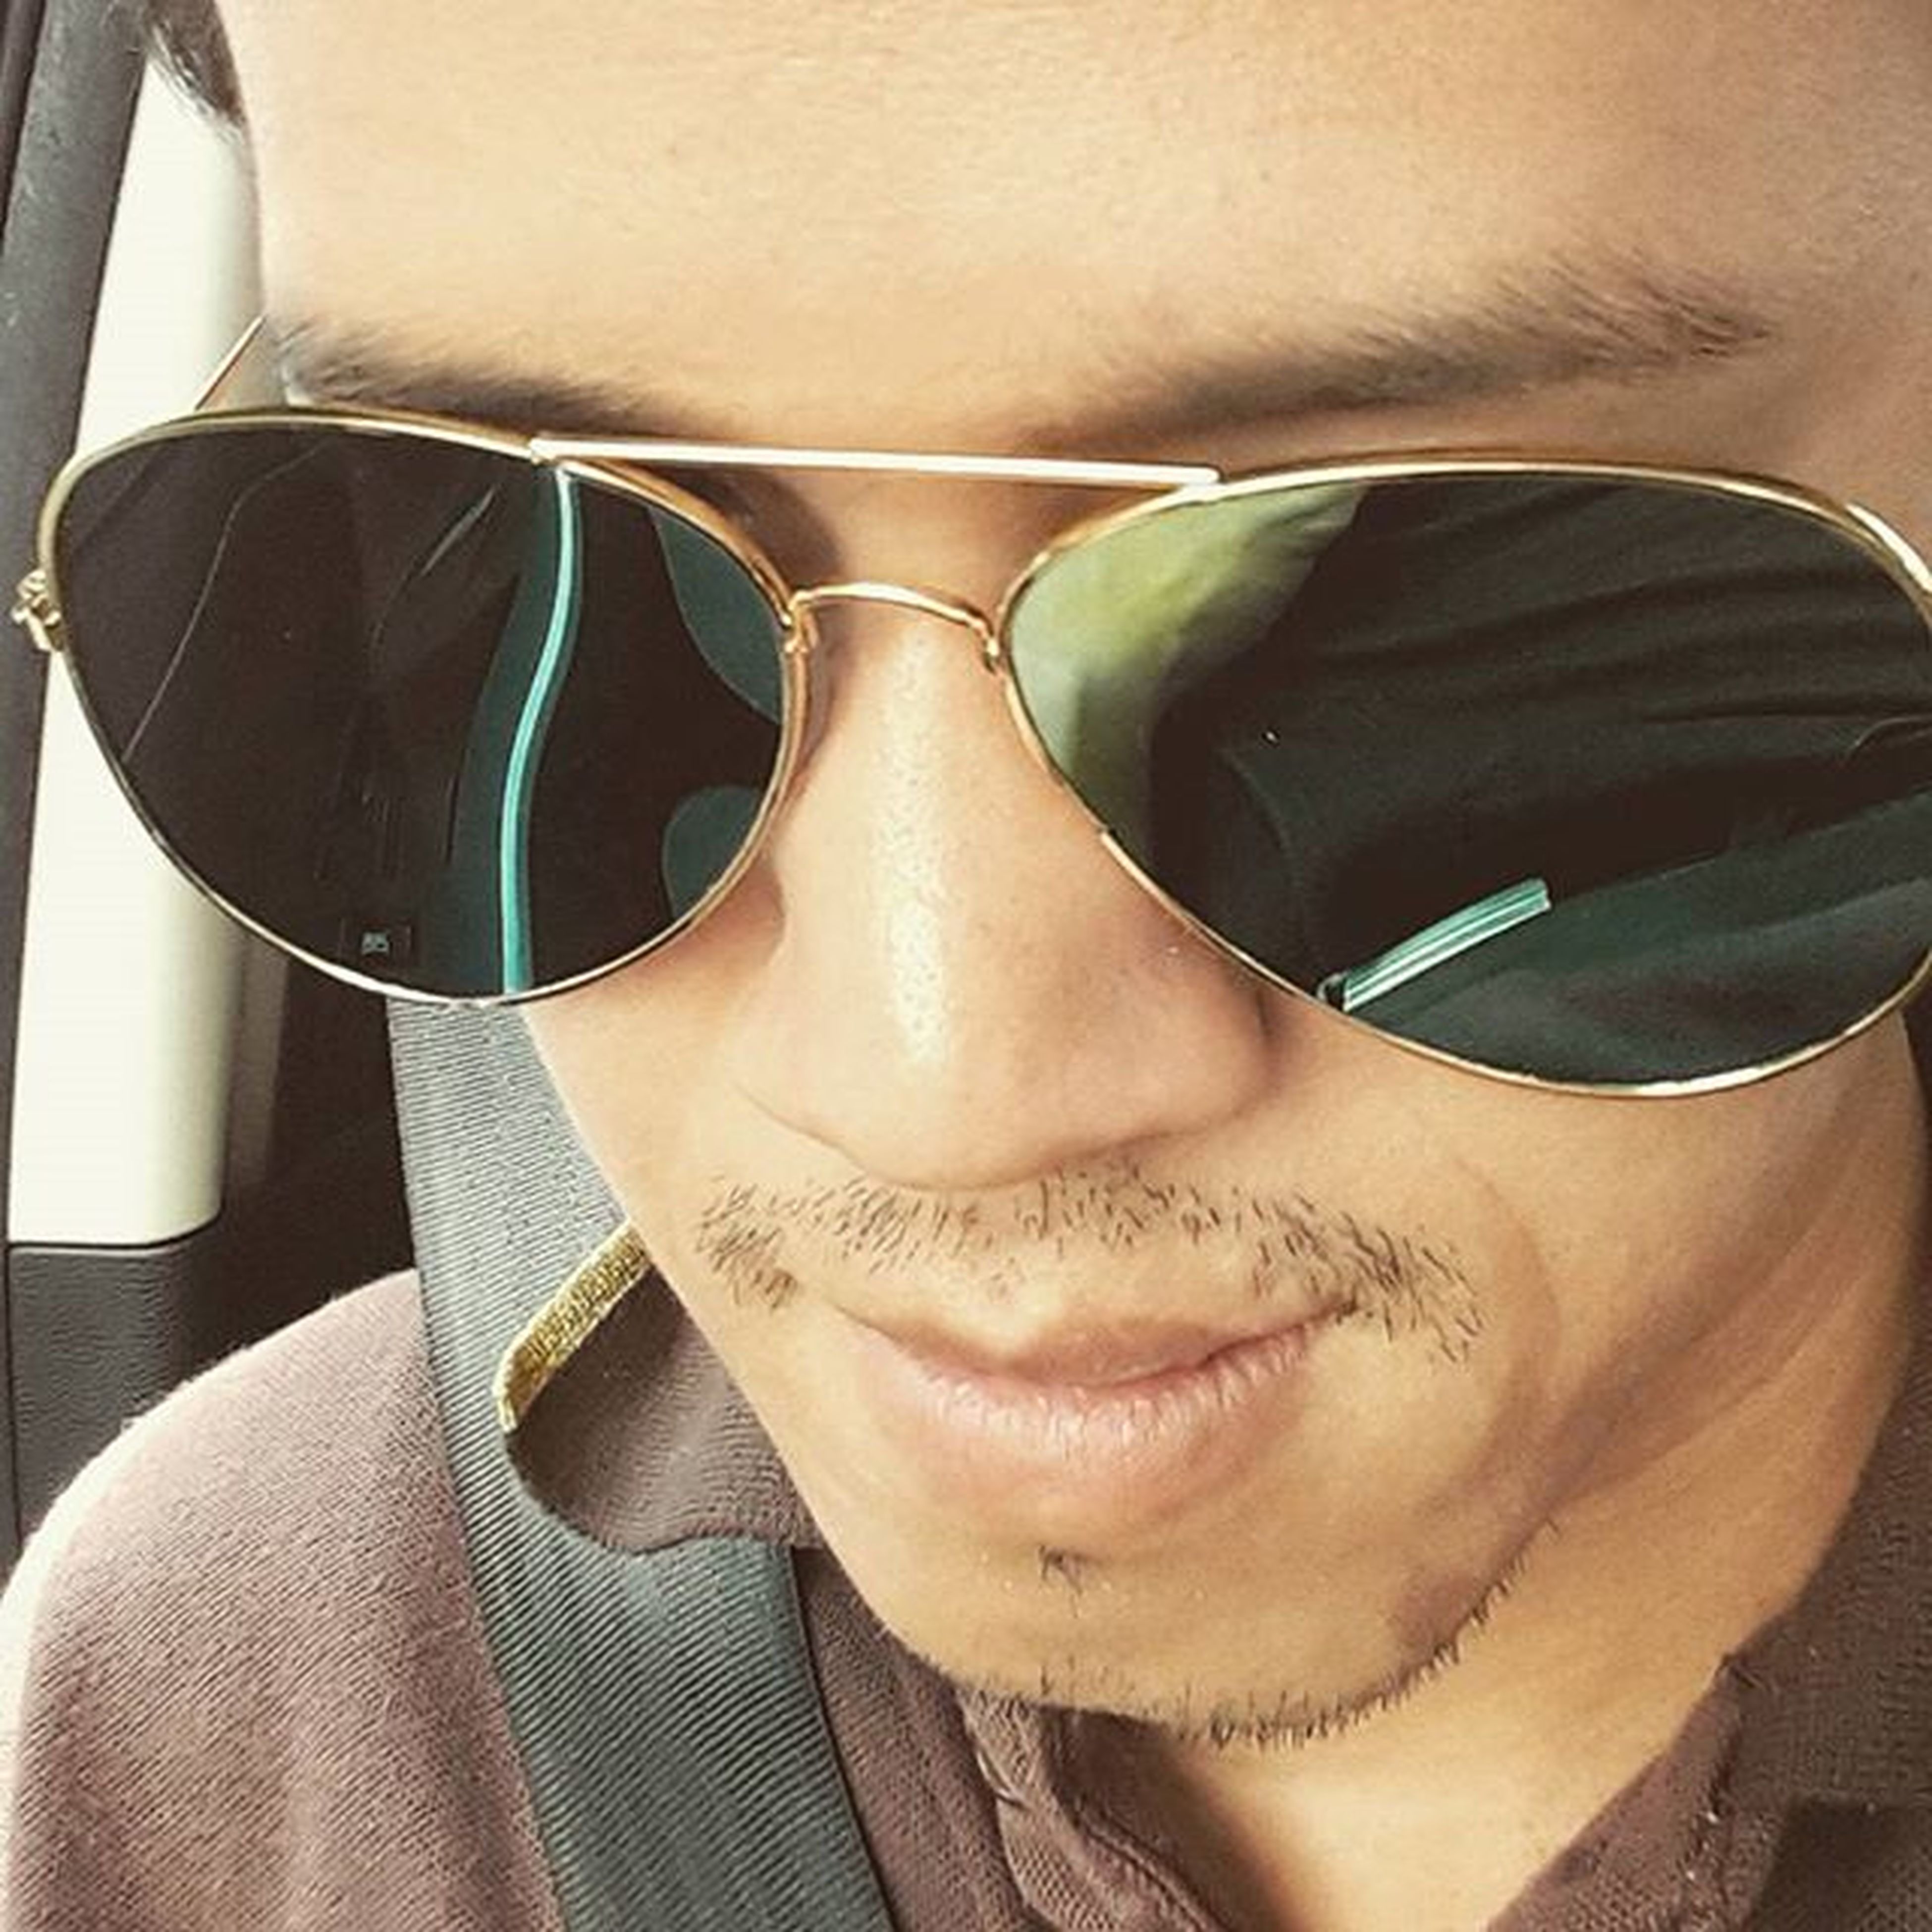 sunglasses, lifestyles, leisure activity, young adult, close-up, indoors, person, headshot, front view, reflection, casual clothing, looking at camera, portrait, eyeglasses, young men, wearing, relaxation